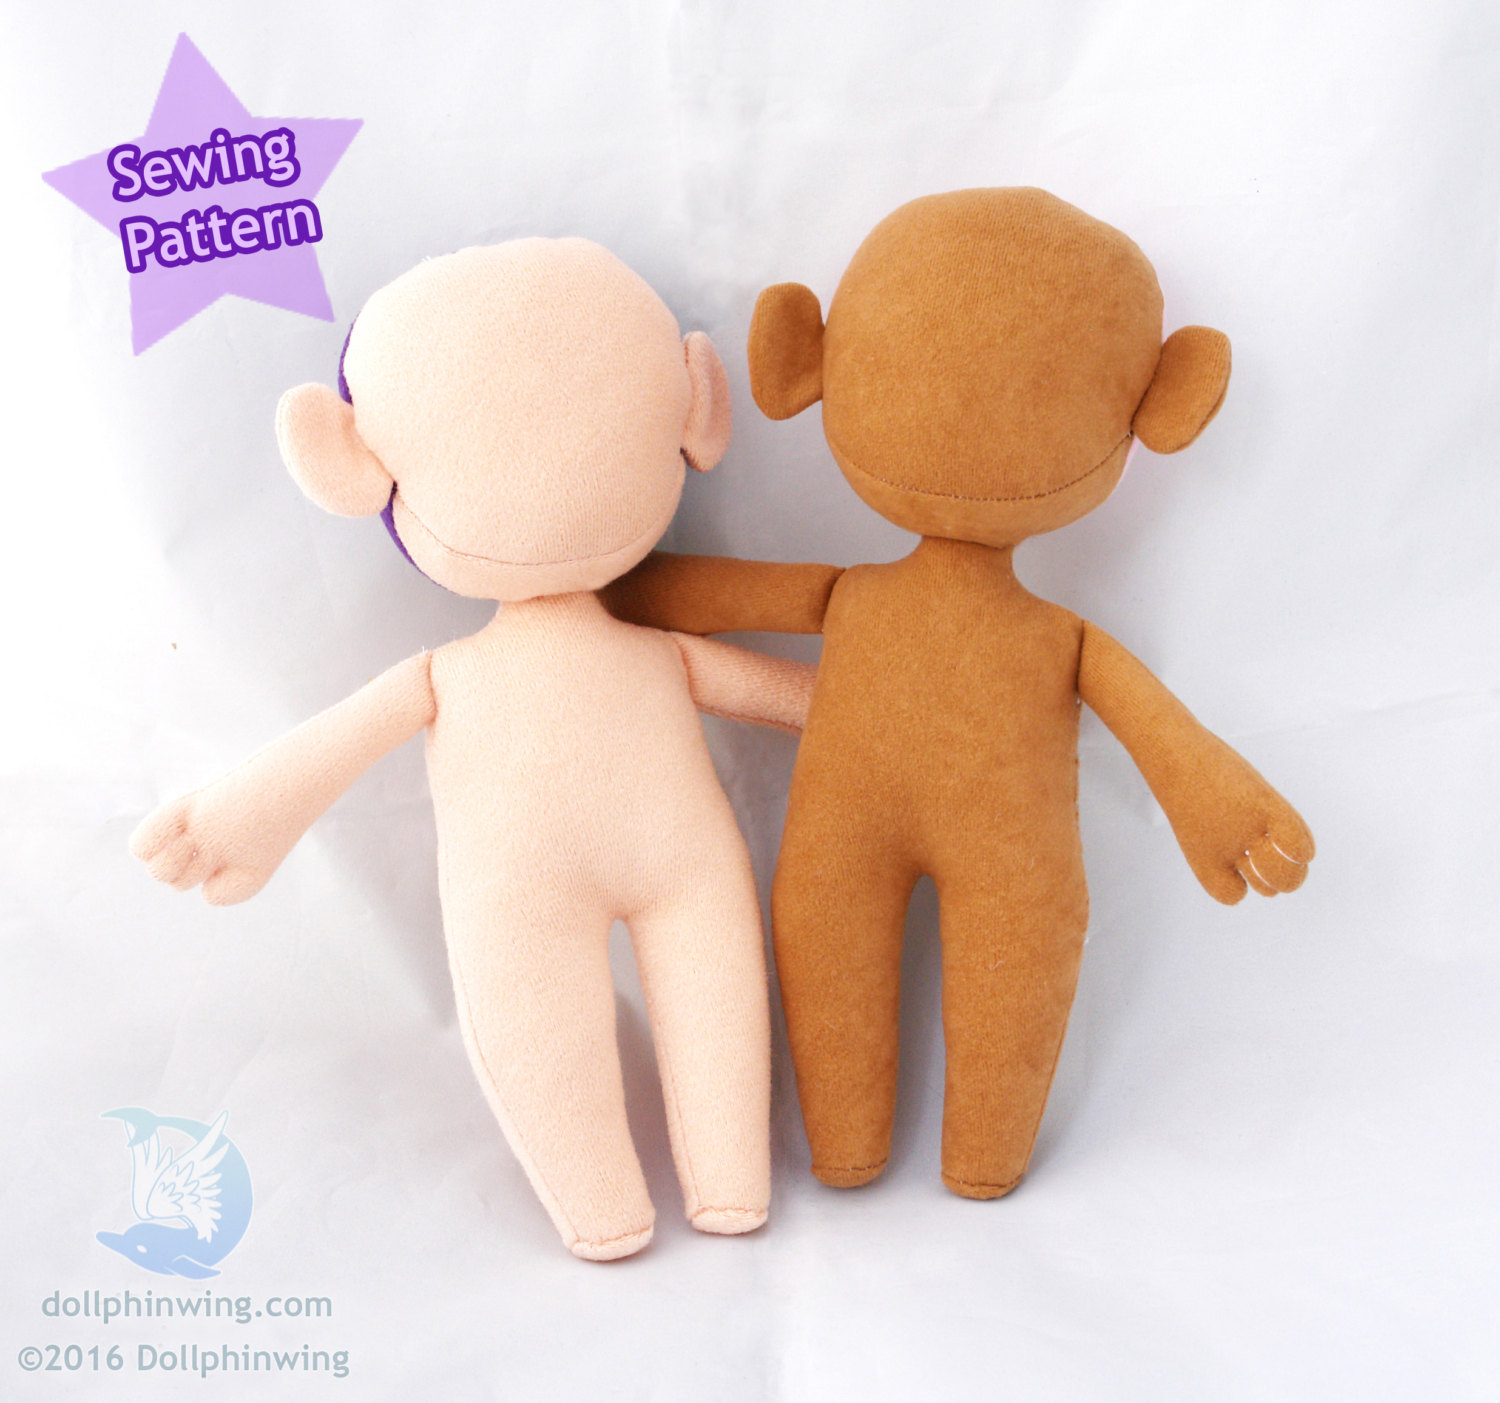 Little doll person sewing pattern jeuxipadfo Images